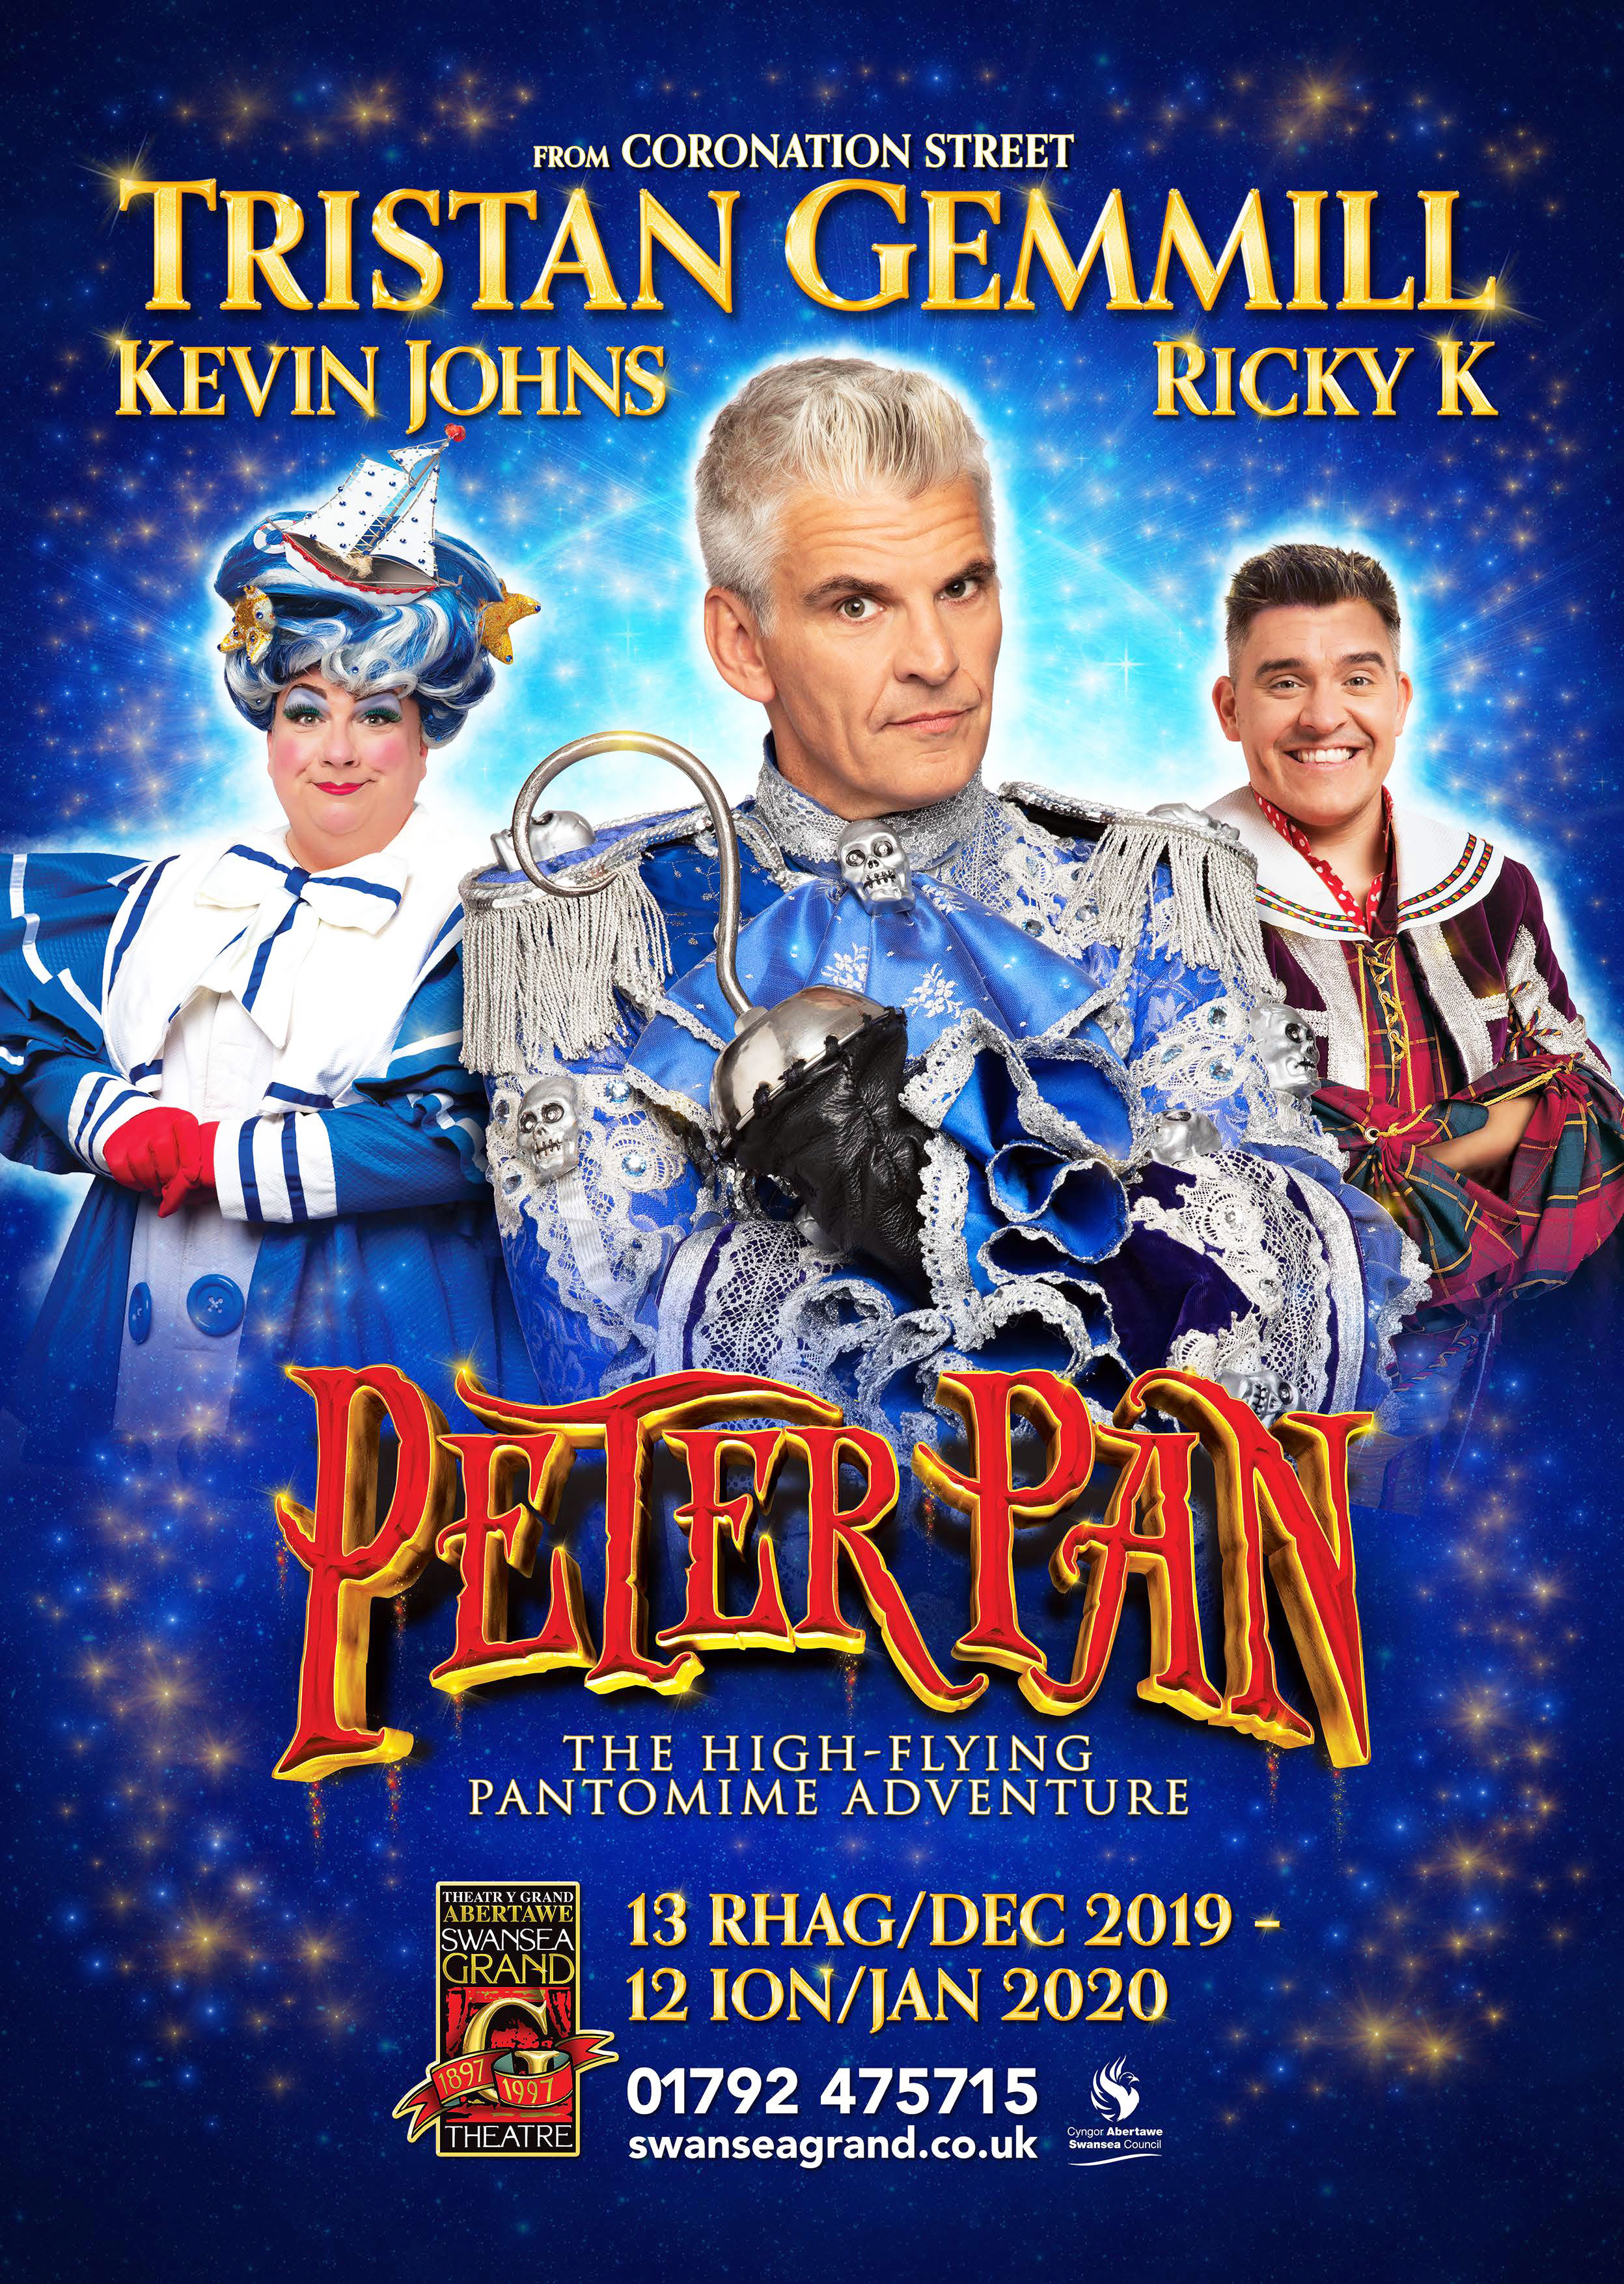 Tristan Gemmill Stars In Peter Pan at Swansea Grand from Friday 13 December 2019 to Sunday 12 January 2020.